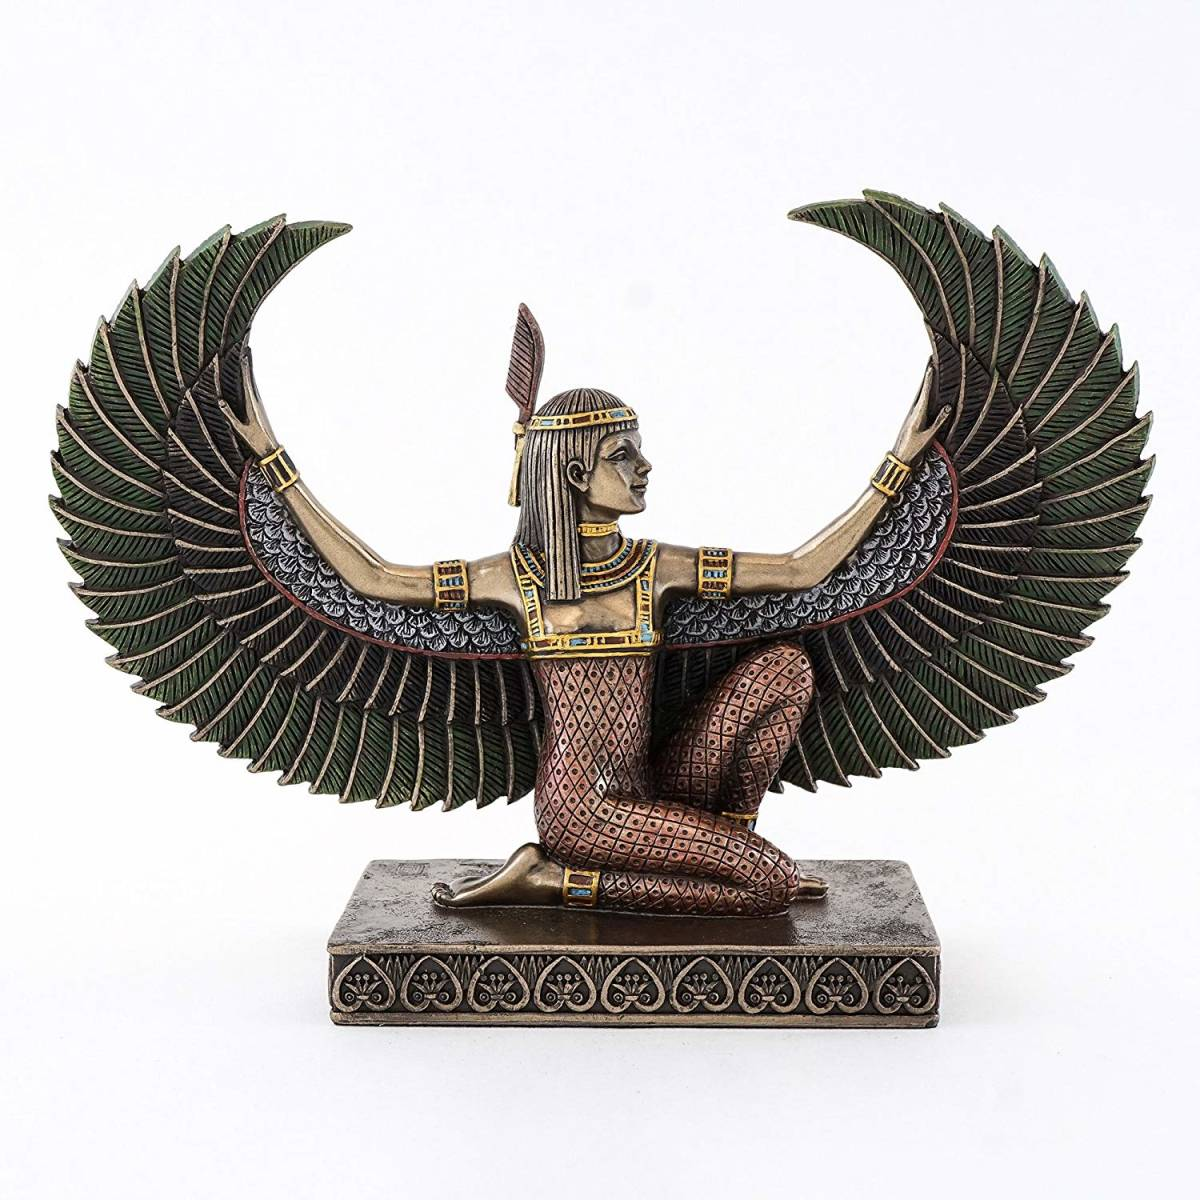 古代エジプト 有翼の マアト神 彫像/ Top Collection 6 inch Egyptian Winged Maat Sculpture in Cold Cast Bronze(輸入品)